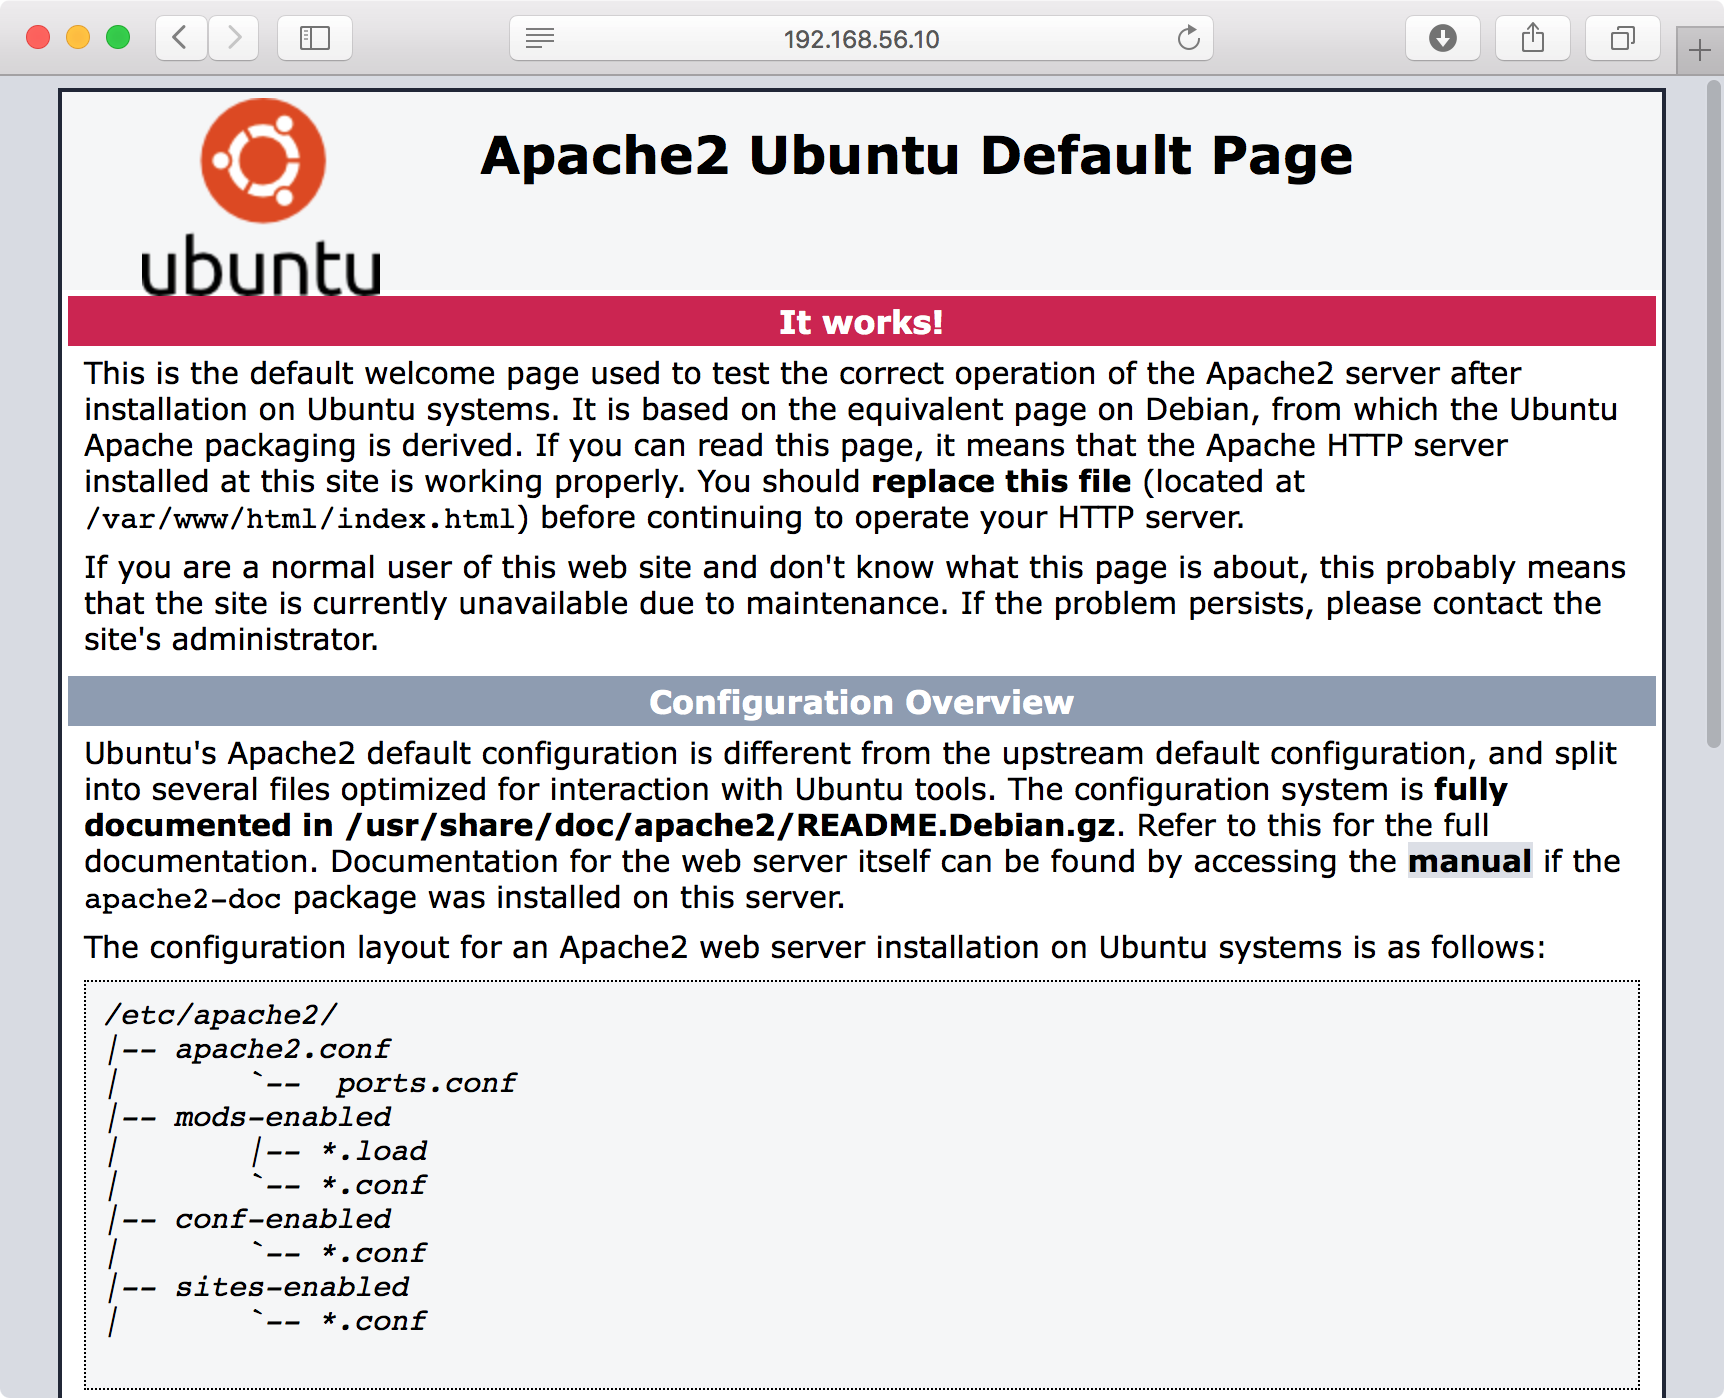 Apache2 - It works